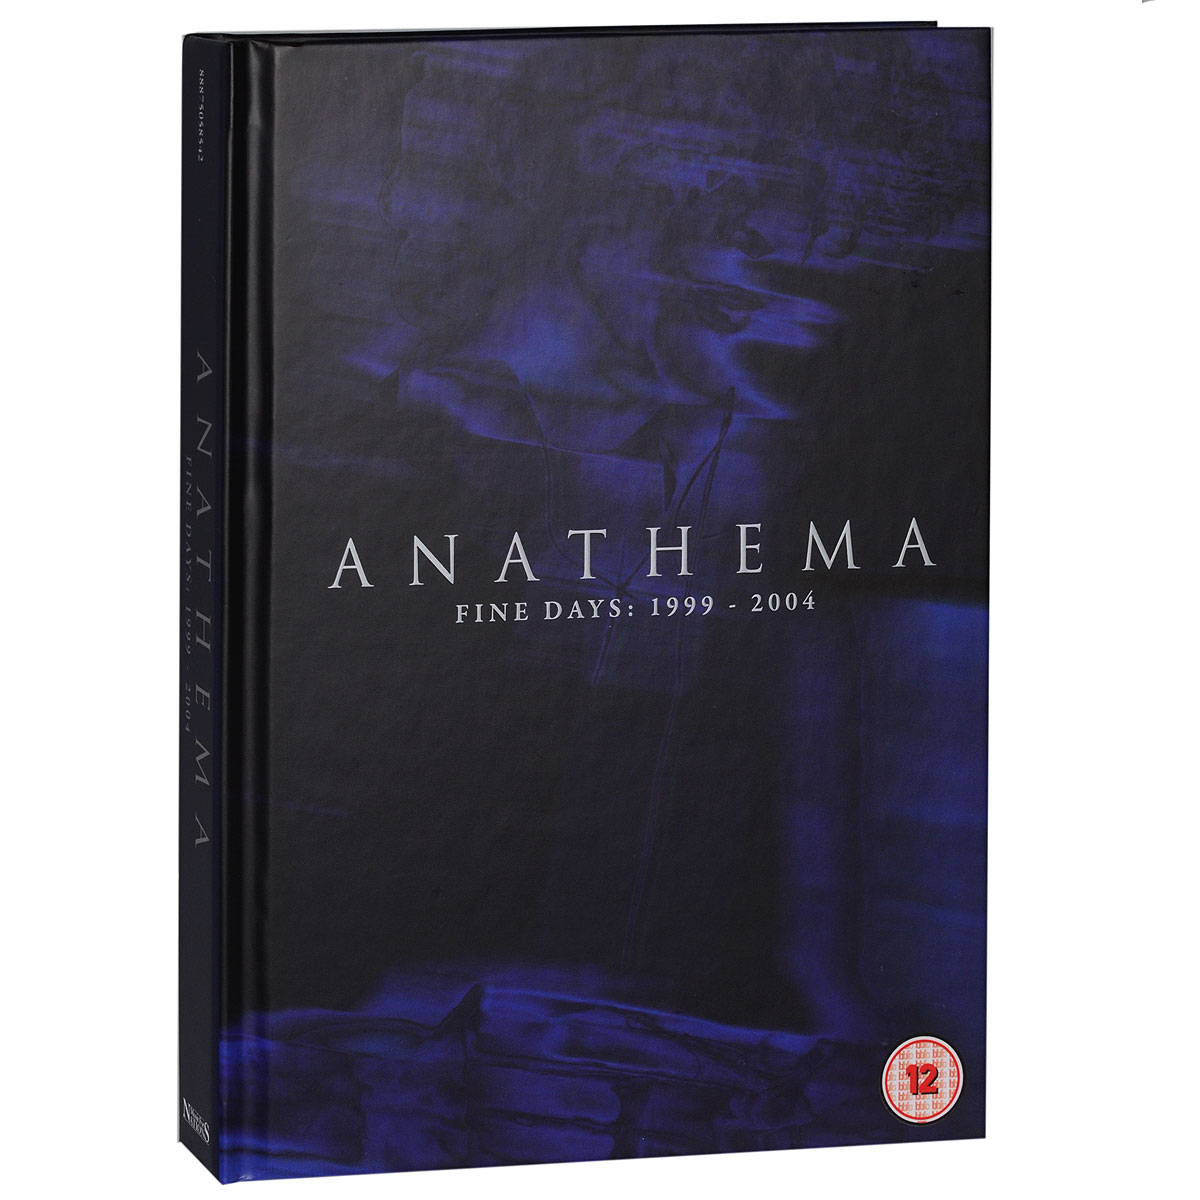 Anathema Anathema. Fine Days. 1999-2004 (3 CD + DVD)